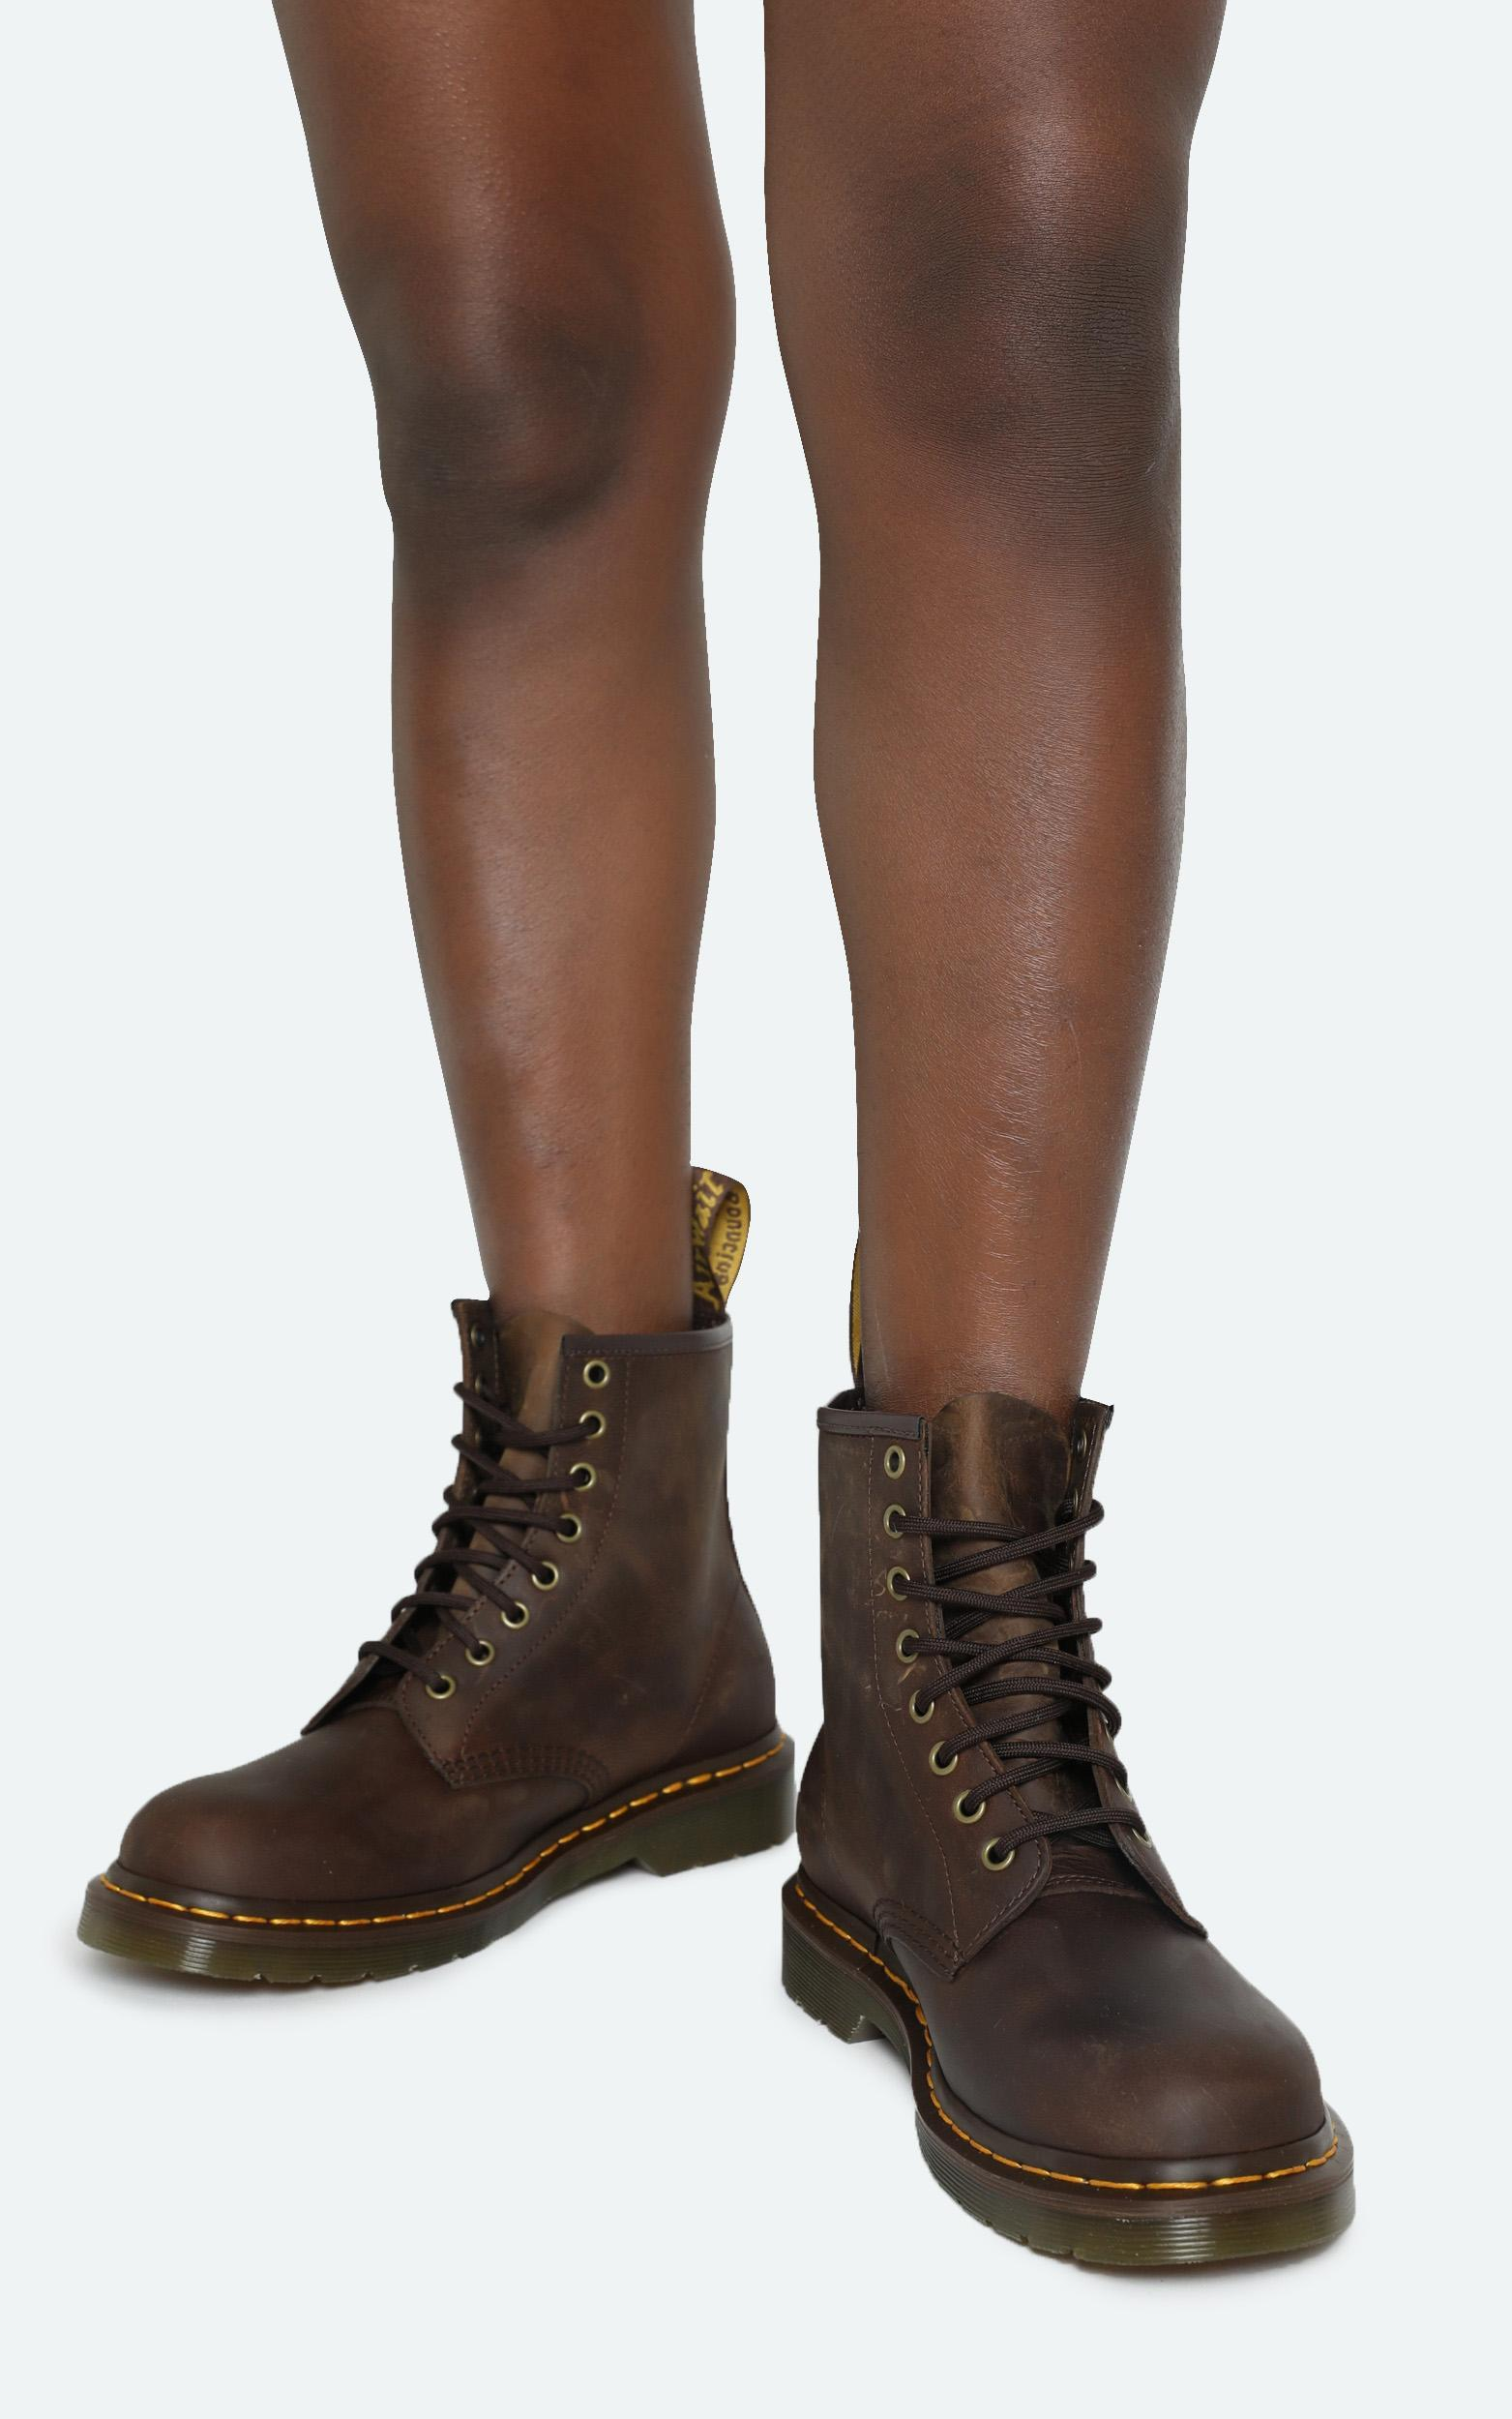 Dr. Martens - 1460 8 Eye Boot in Gaucho Crazy Horse - 5, Brown, hi-res image number null